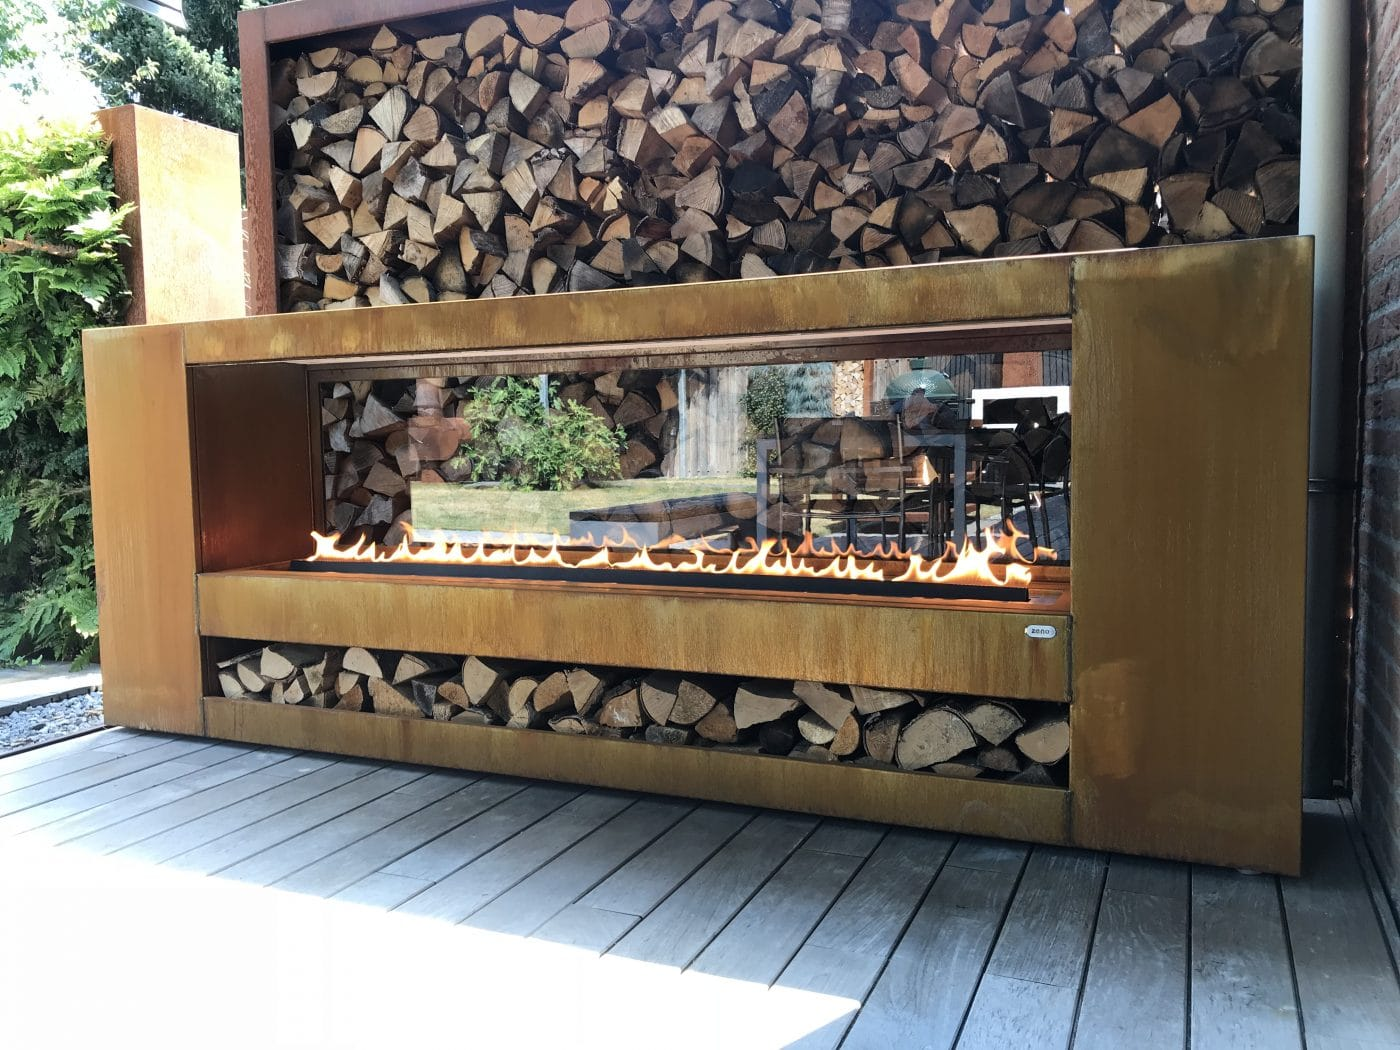 Zeno-Lineair-Outdoor-gashaard-Lijnbrander-Fireplace-Garten-Kamin-propane-natural-gas14.jpg